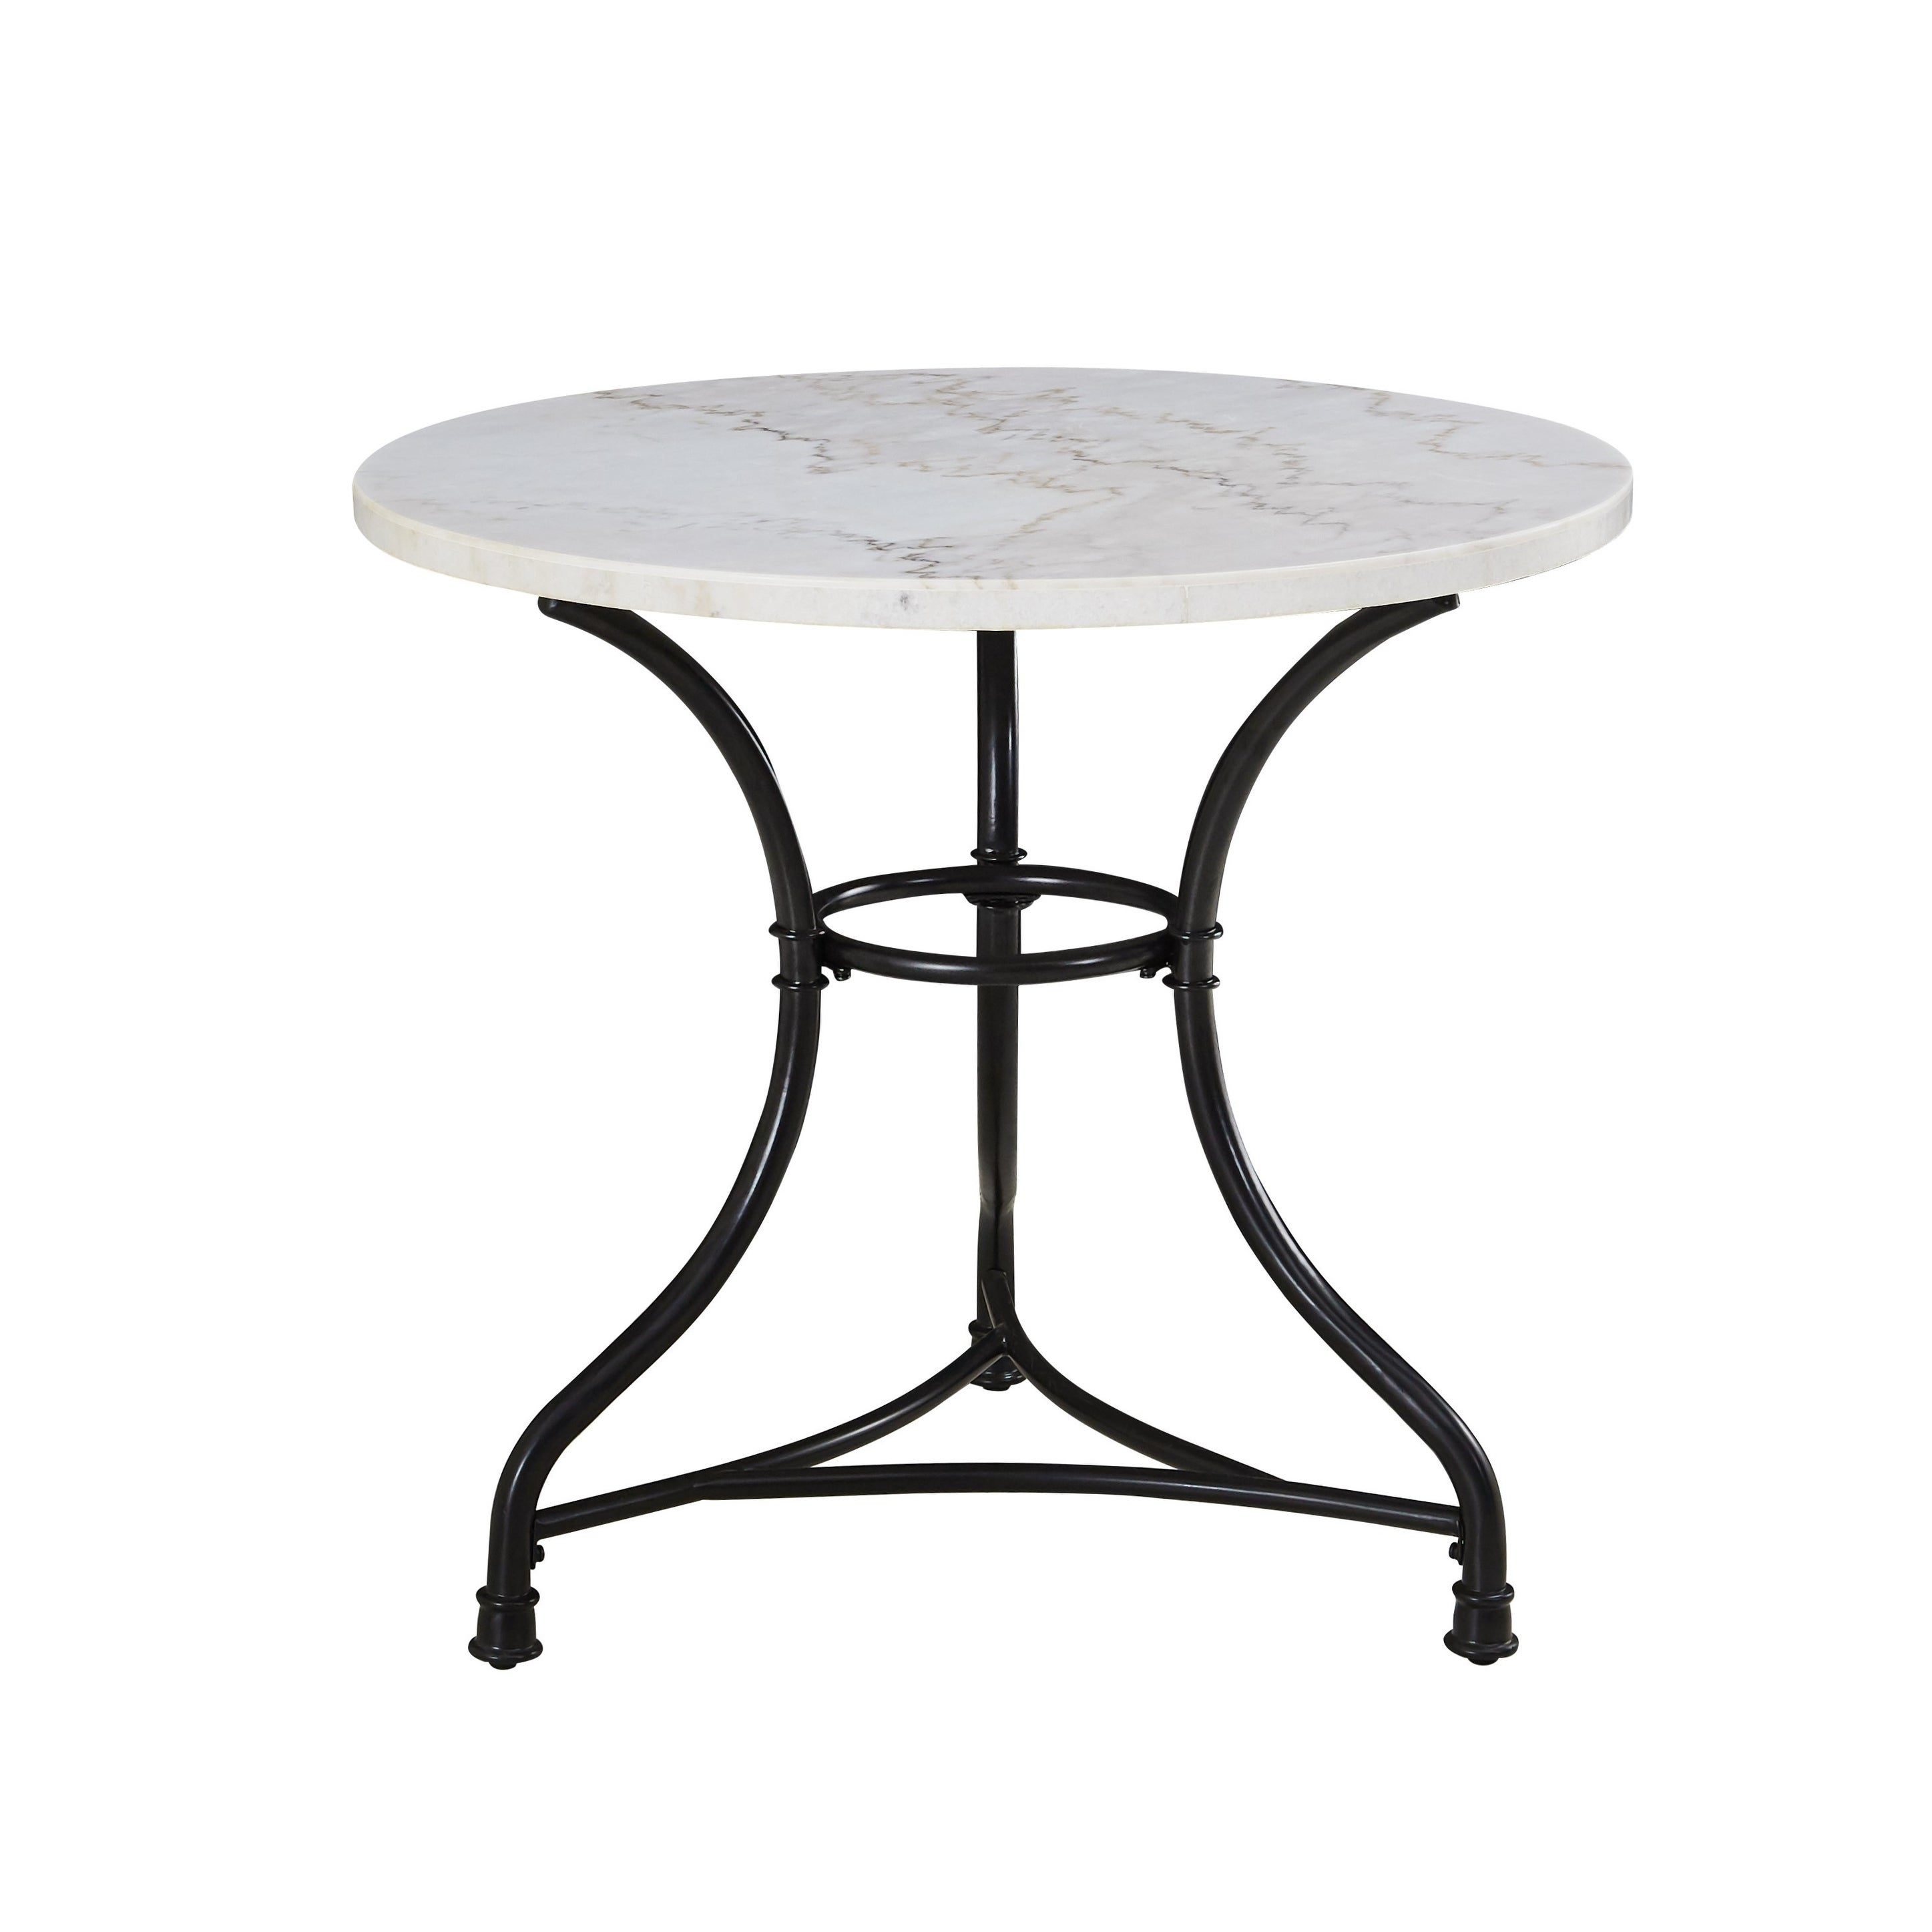 Callao 34 Inch Round Marble Bistro Table By Greyson Living Black On Sale Overstock 28566150